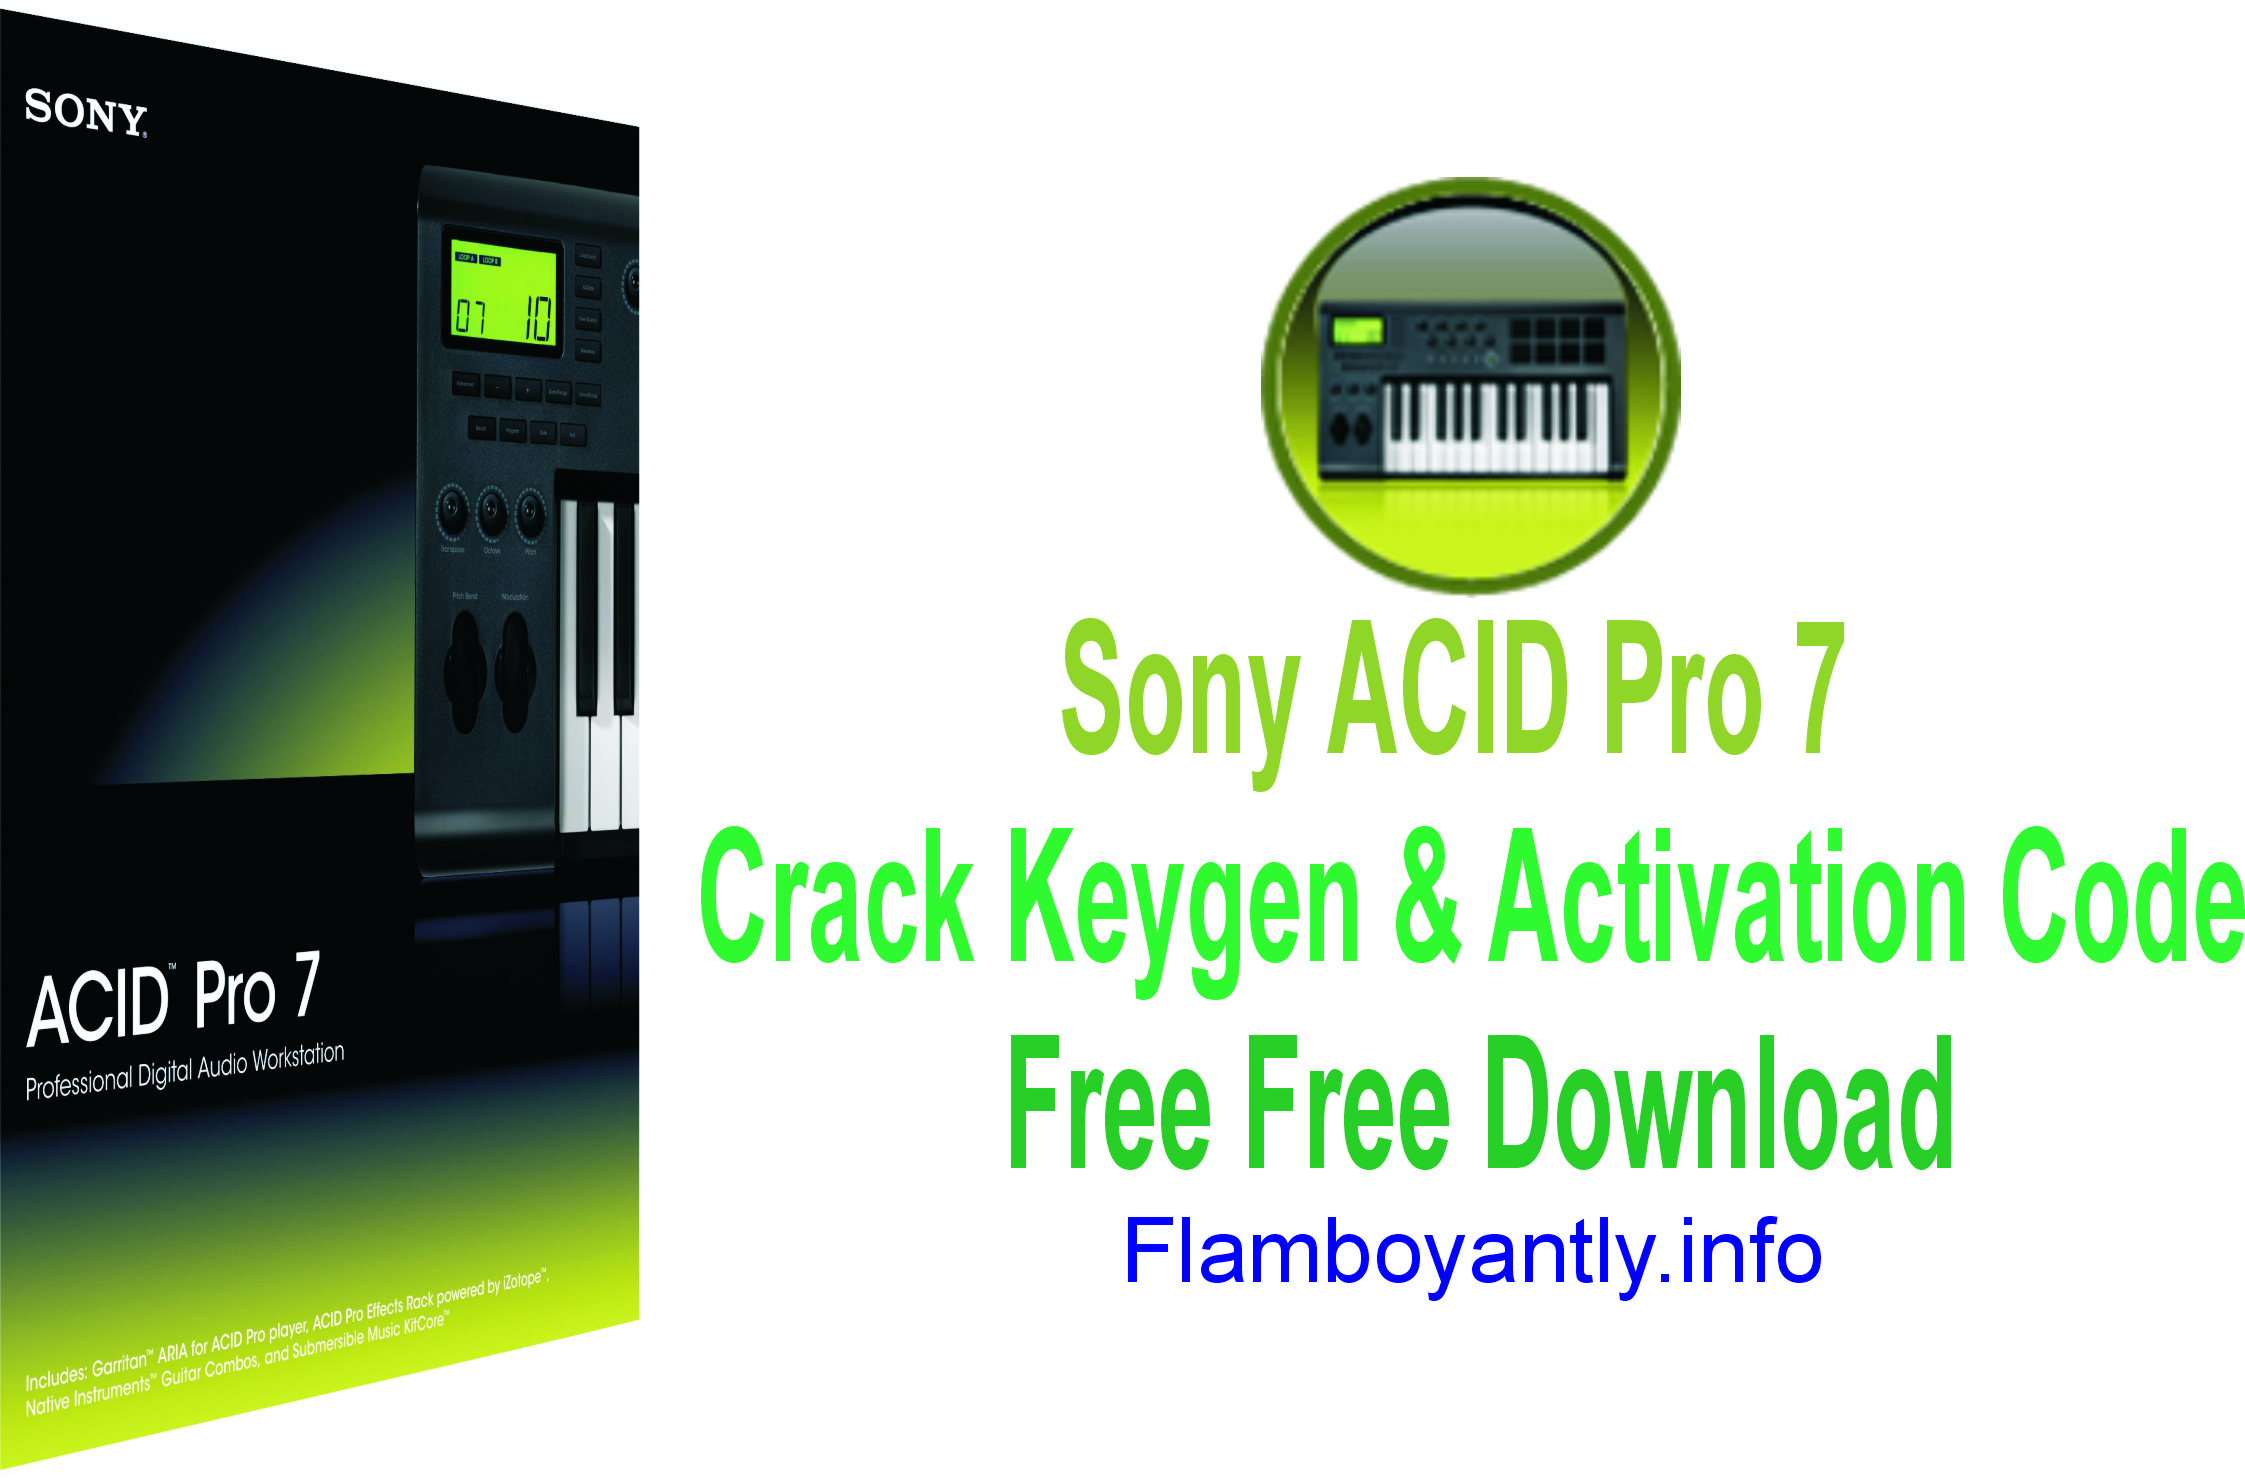 Sony ACID Pro 7 Crack Keygen & Activation Code Free Free Download